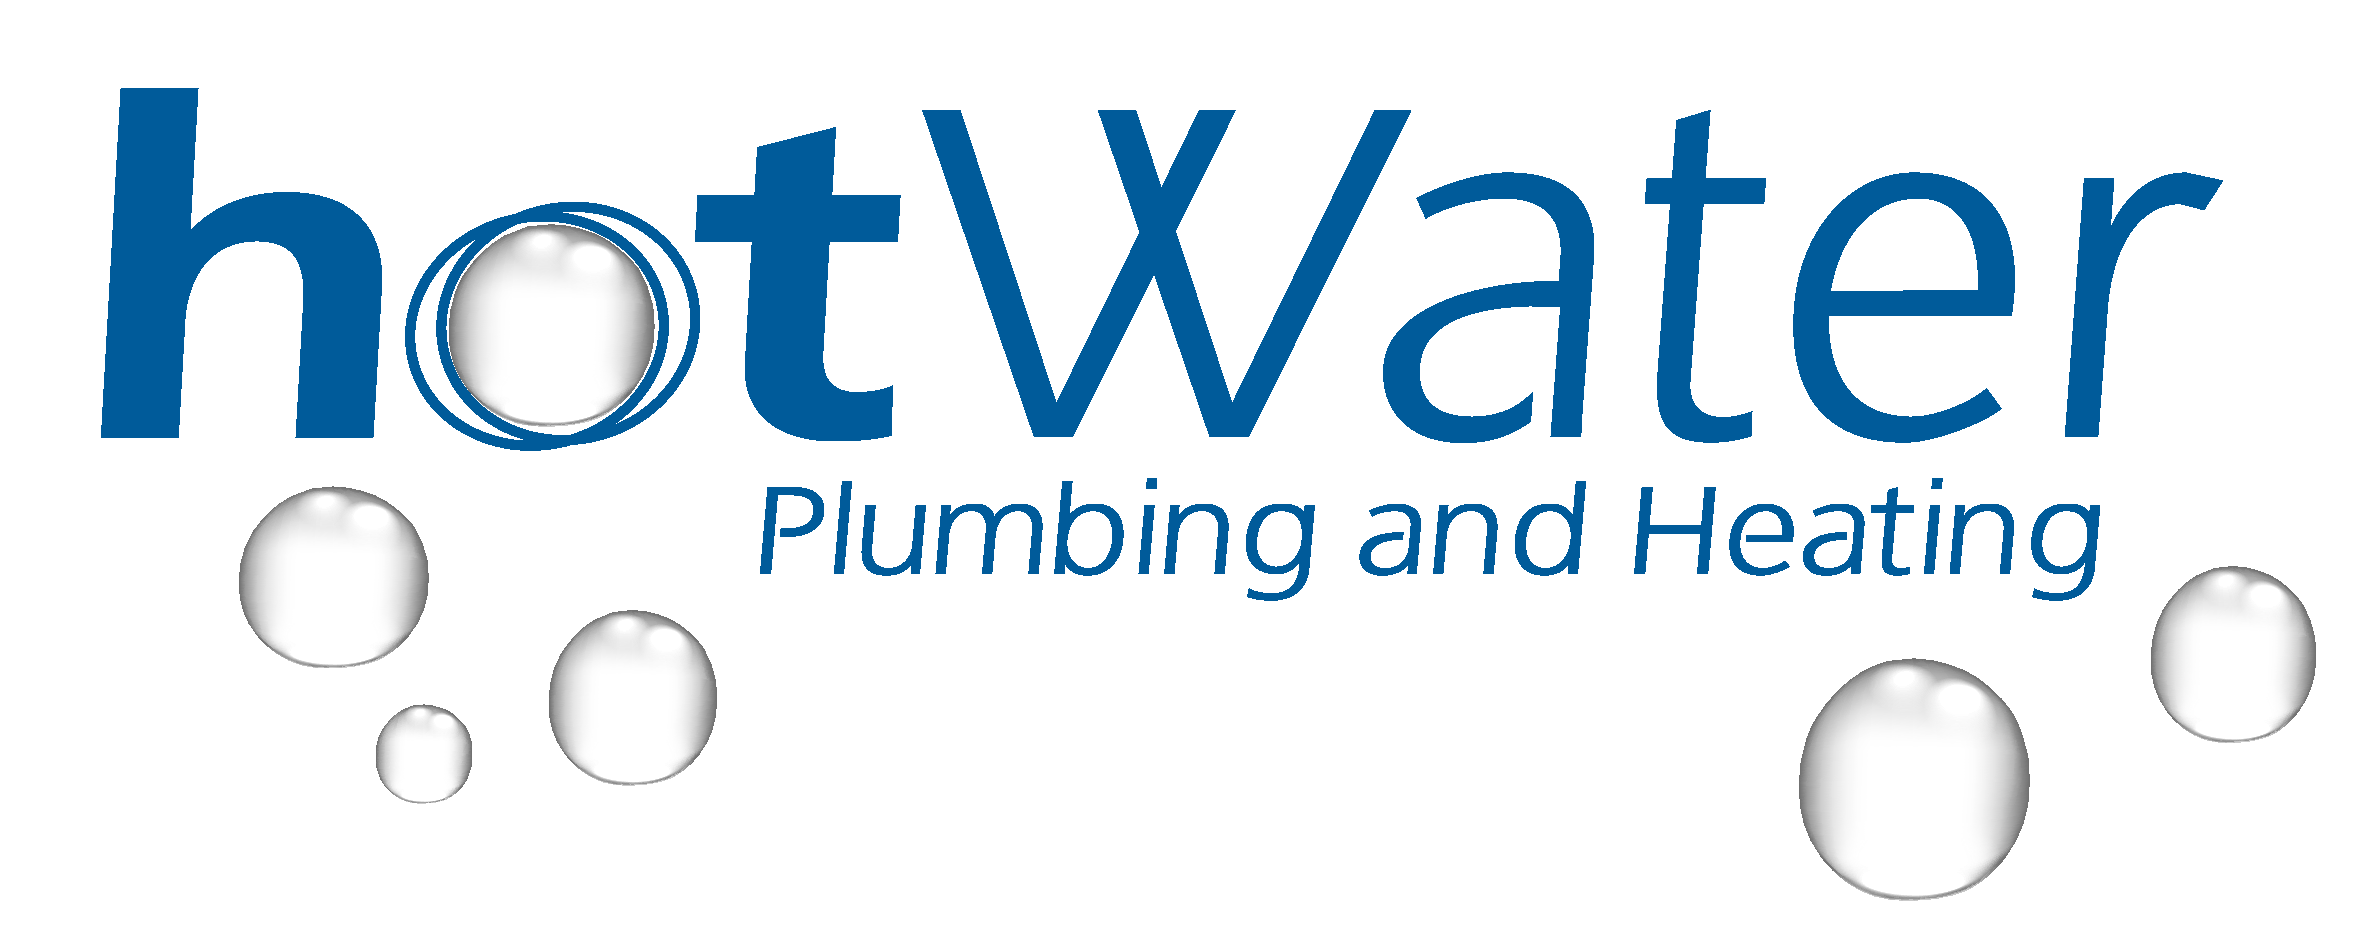 Hot Water Plumbing and Heating Ltd